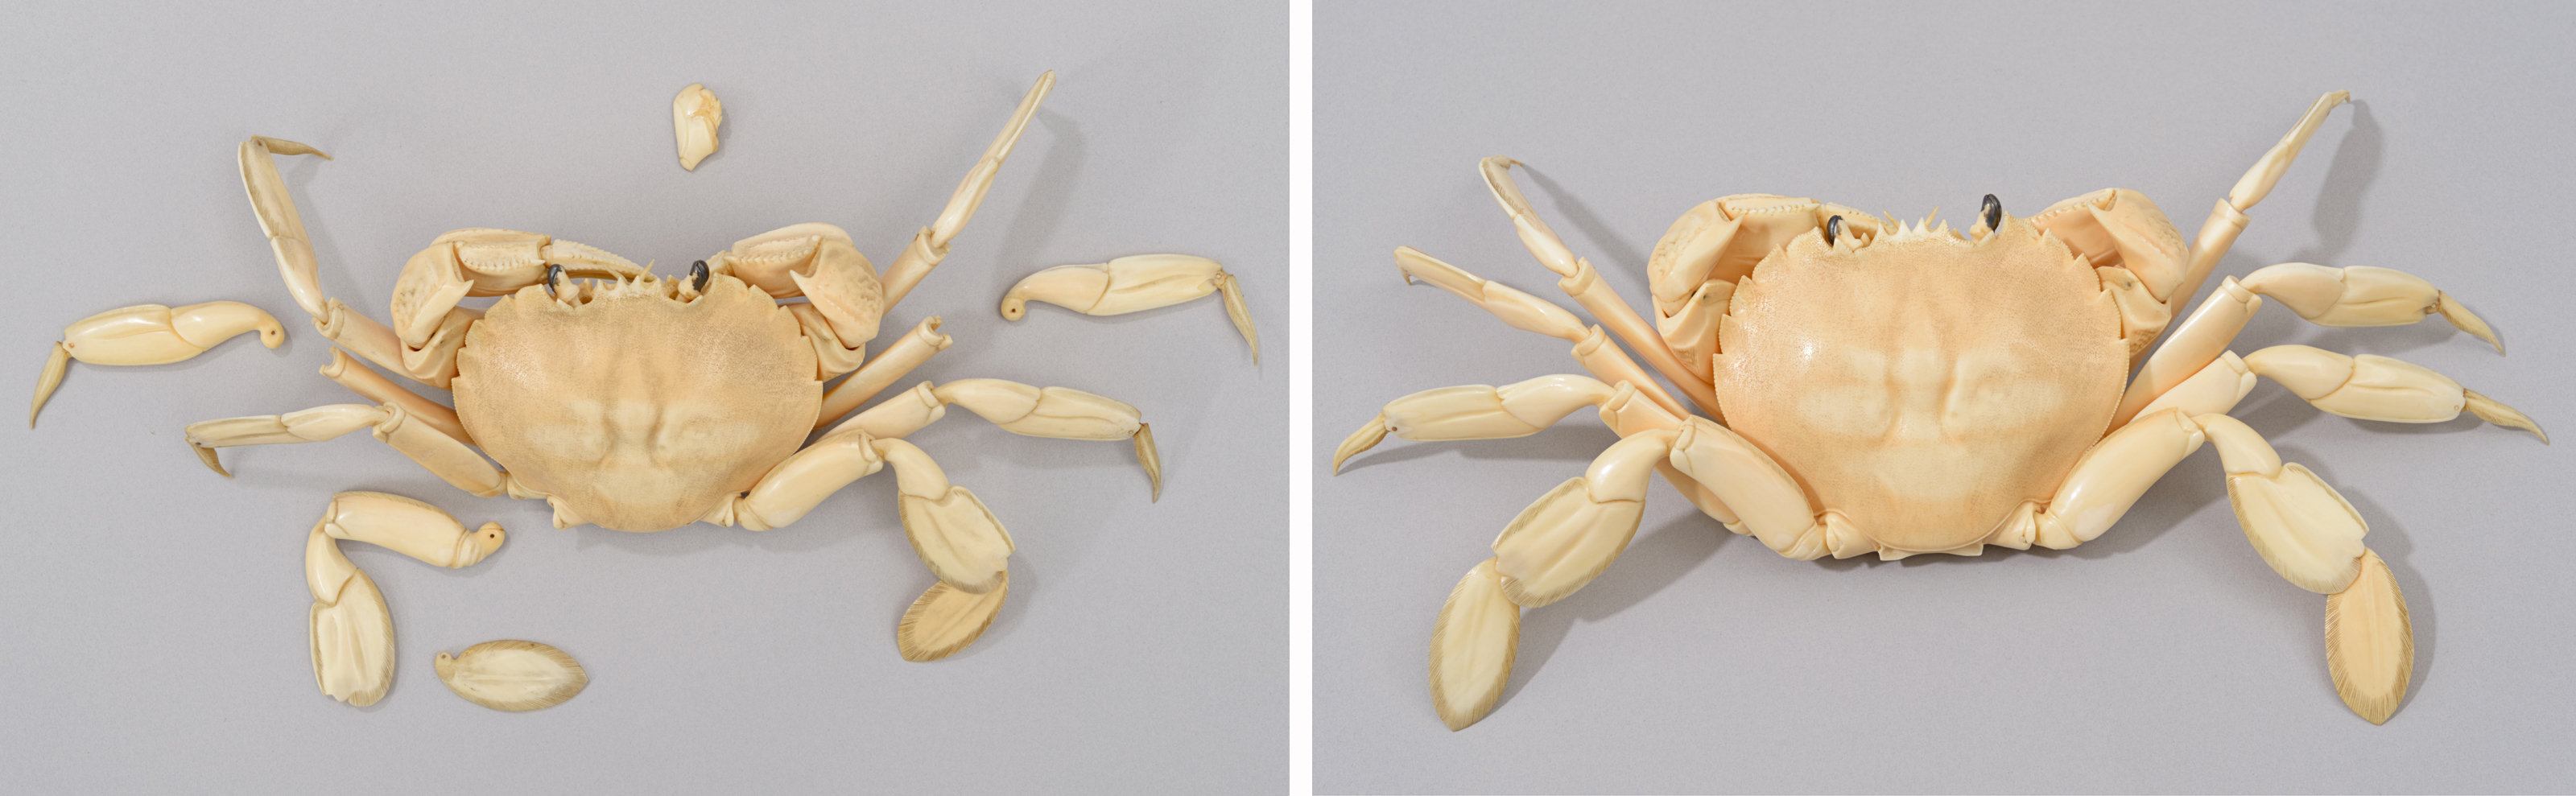 Left: top view of the crab with ivory covered with a layer of dust and dirt, and four sections of legs and one part of mouth detached. Right: top view of the crab after cleaning and repairs: the ivory has regained its natural warm colour and lustre